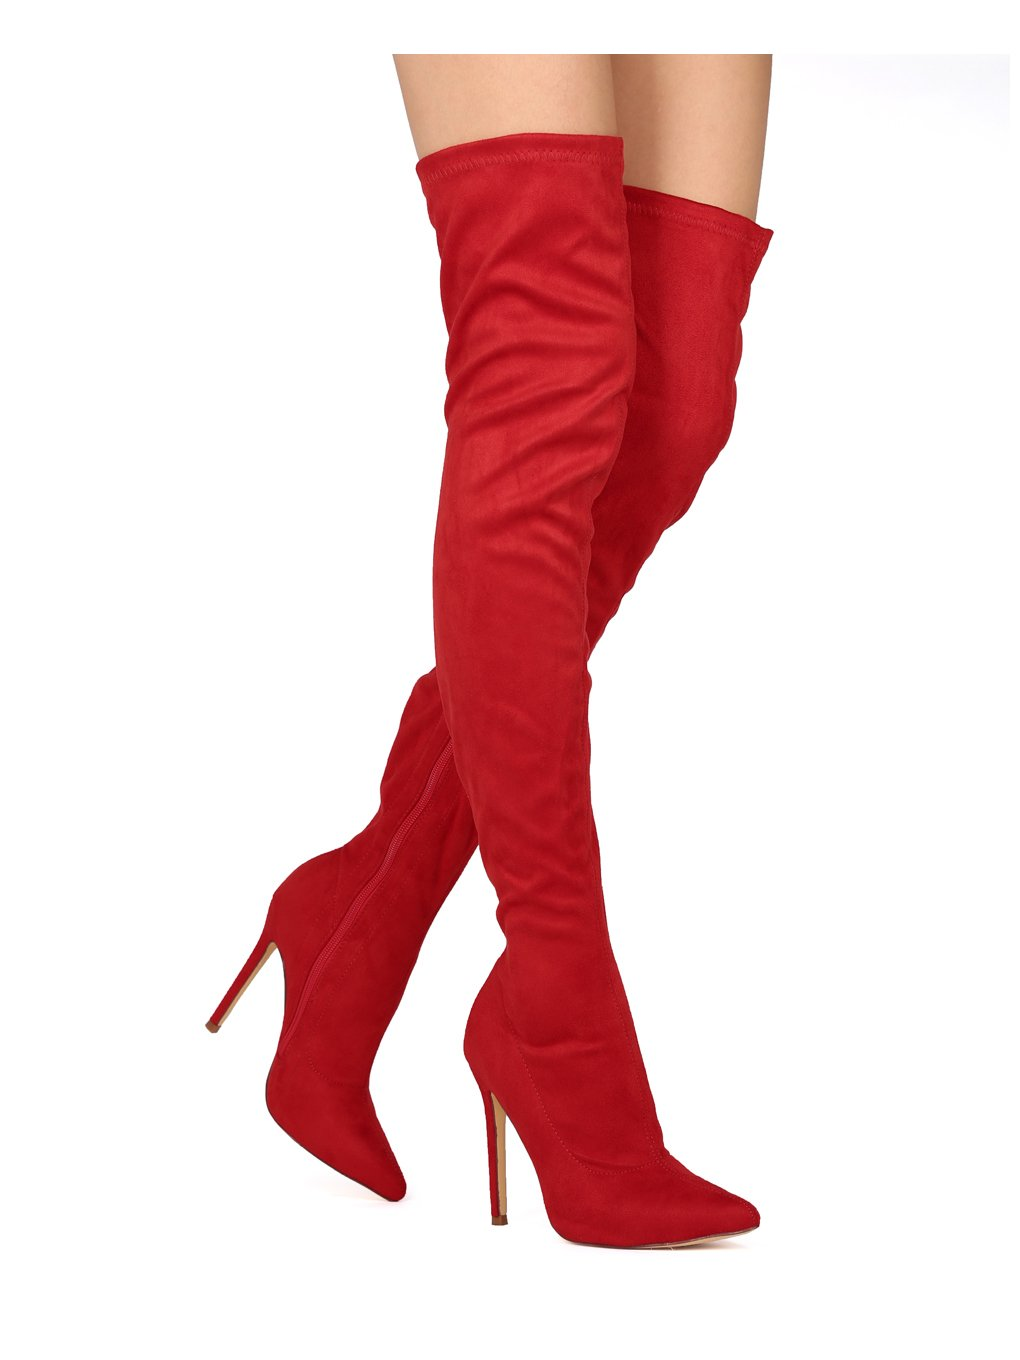 Liliana DB54 Women Suede Pointy Toe Thigh High Single Sole Stiletto Boot B07517DJFF 5.5 M US|Red Faux Suede